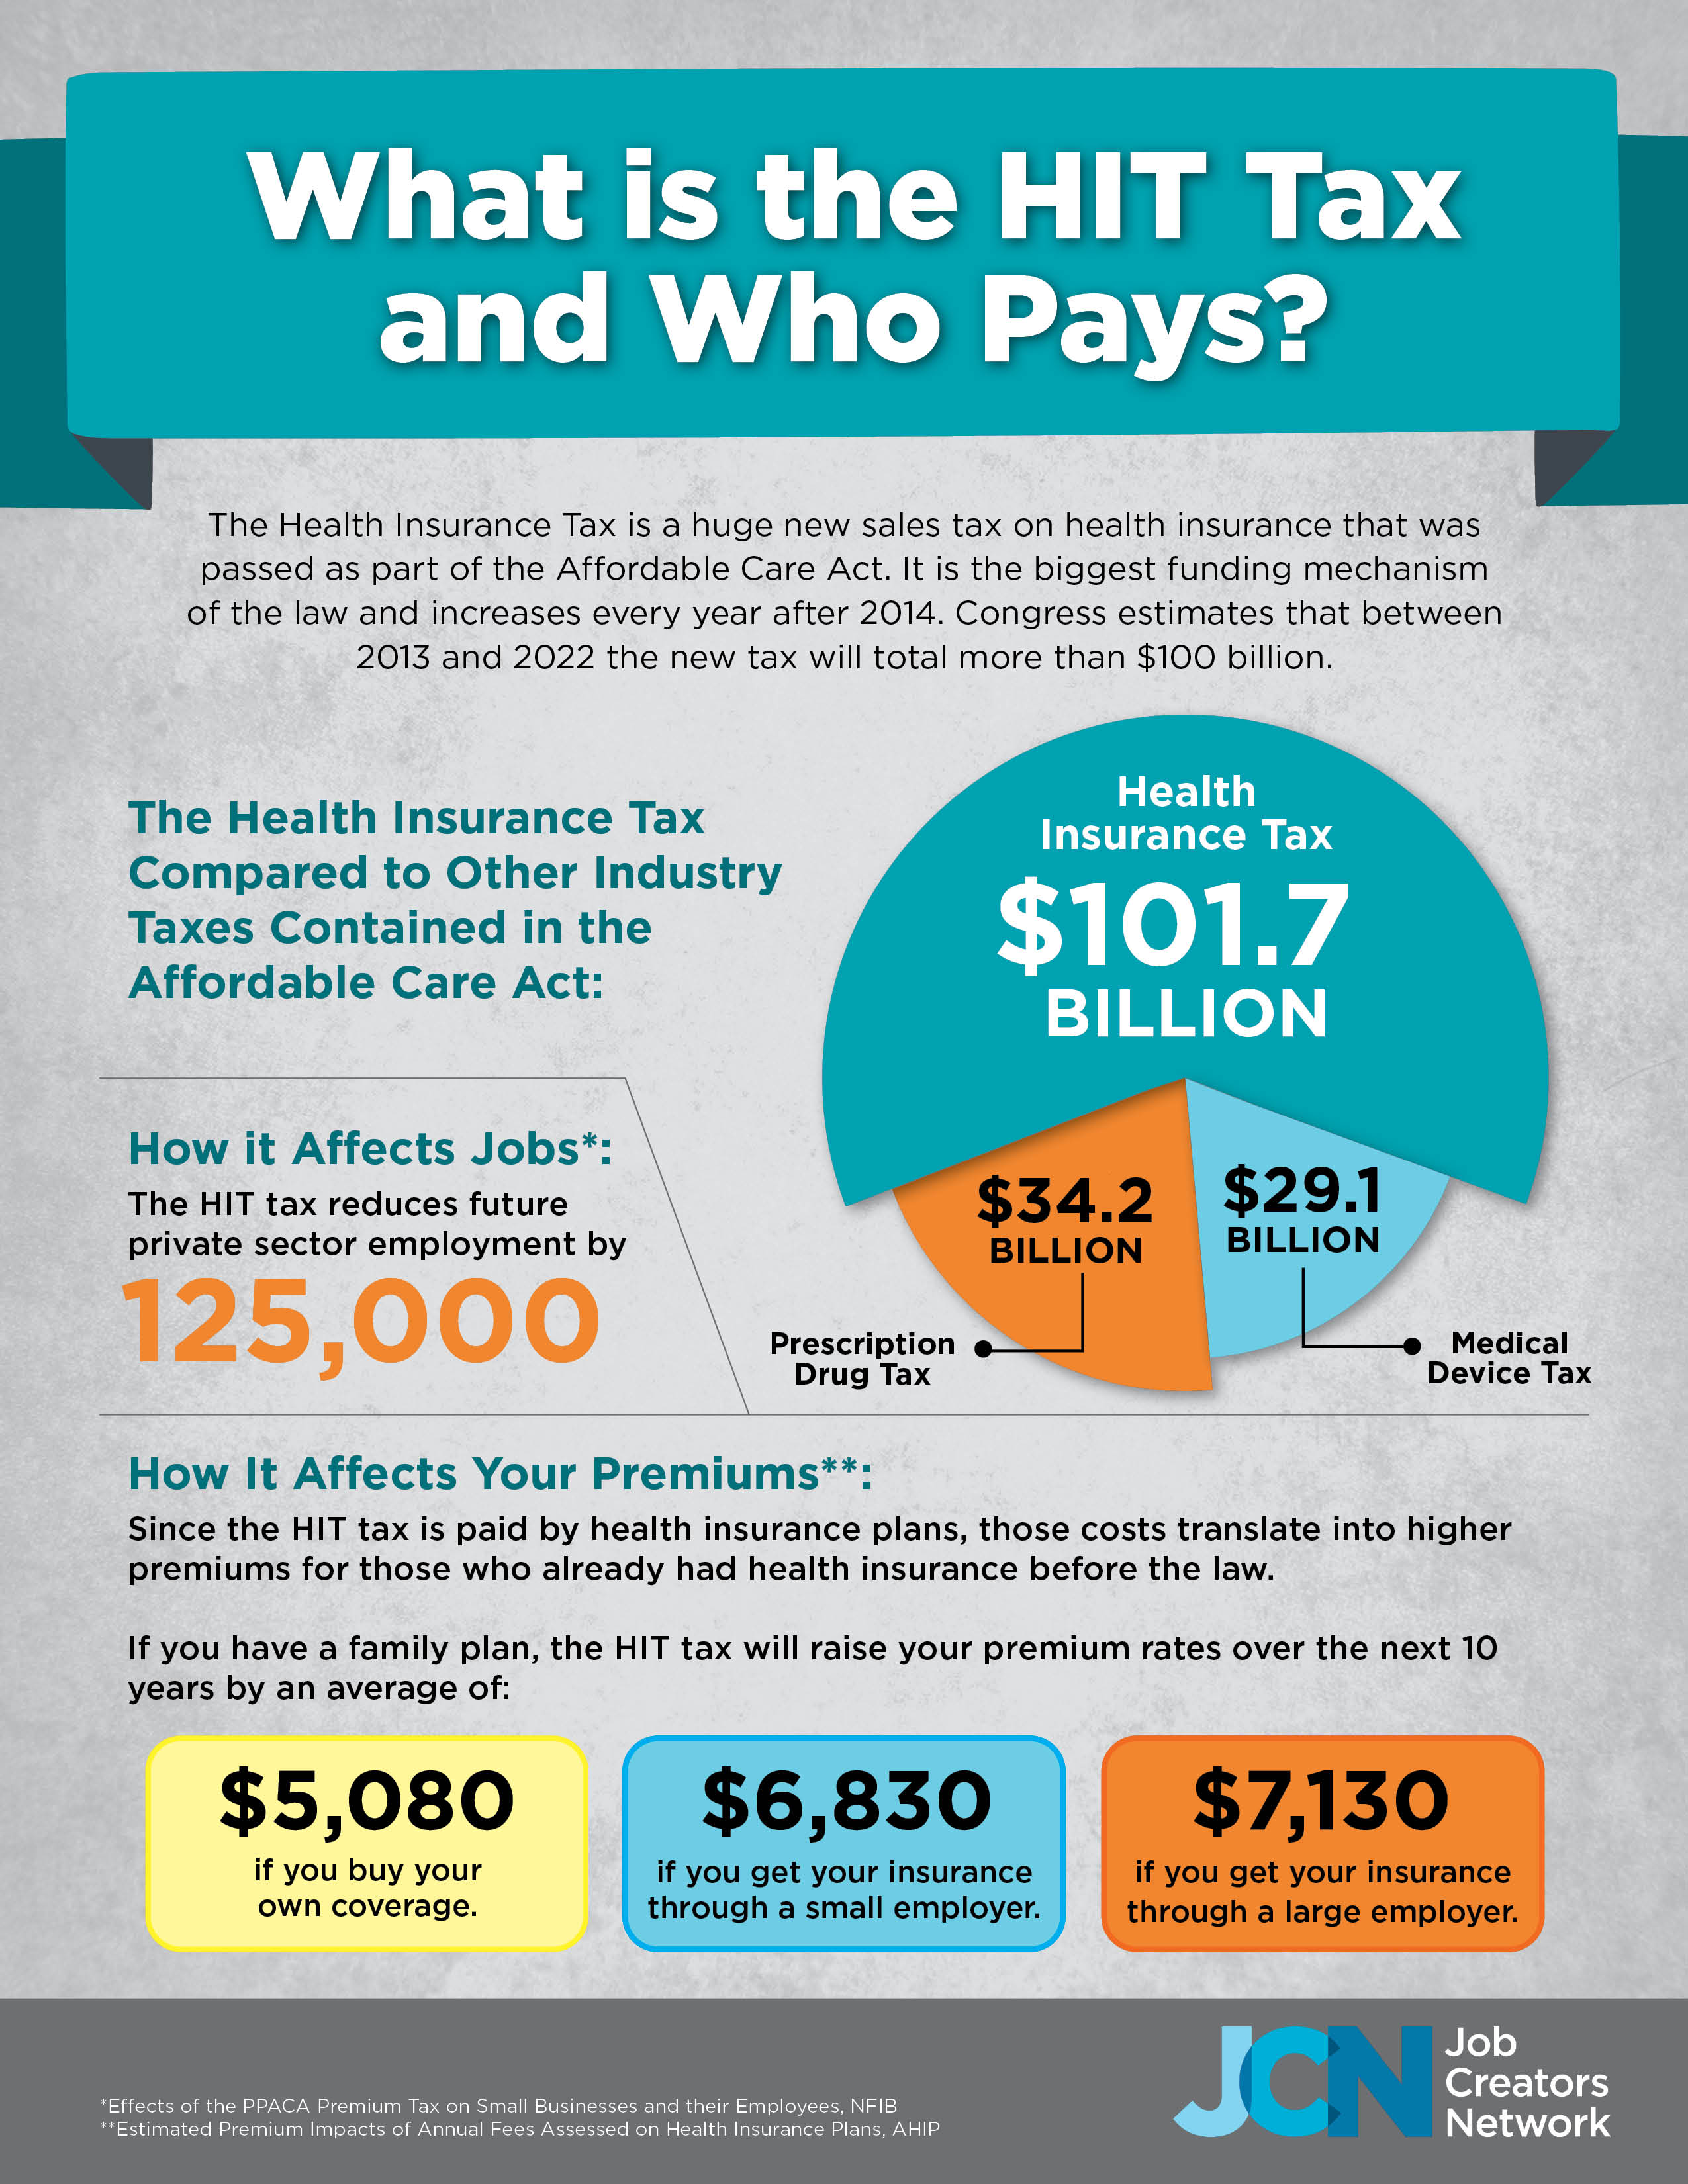 What Is The HIT Tax And Who Pays?